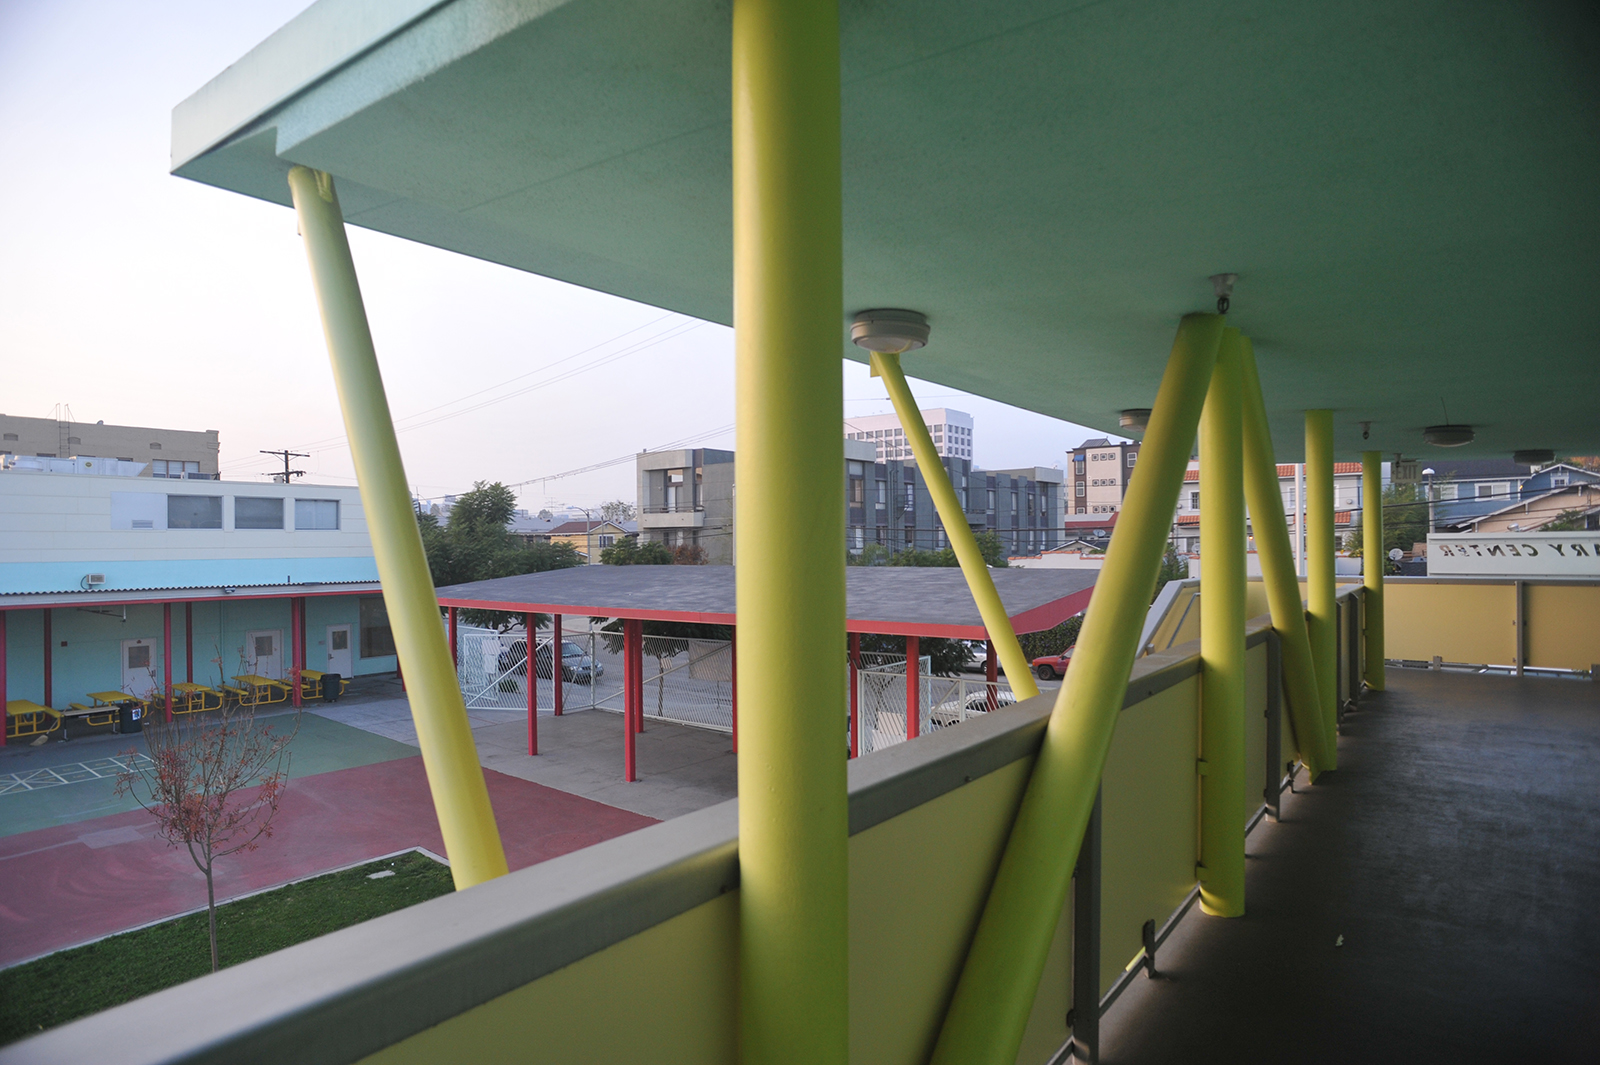 The two primary structures are connected along the northern edge by a canopy or porch-like structure. The 'public porch' canopy addresses both the school and the neighborhood.